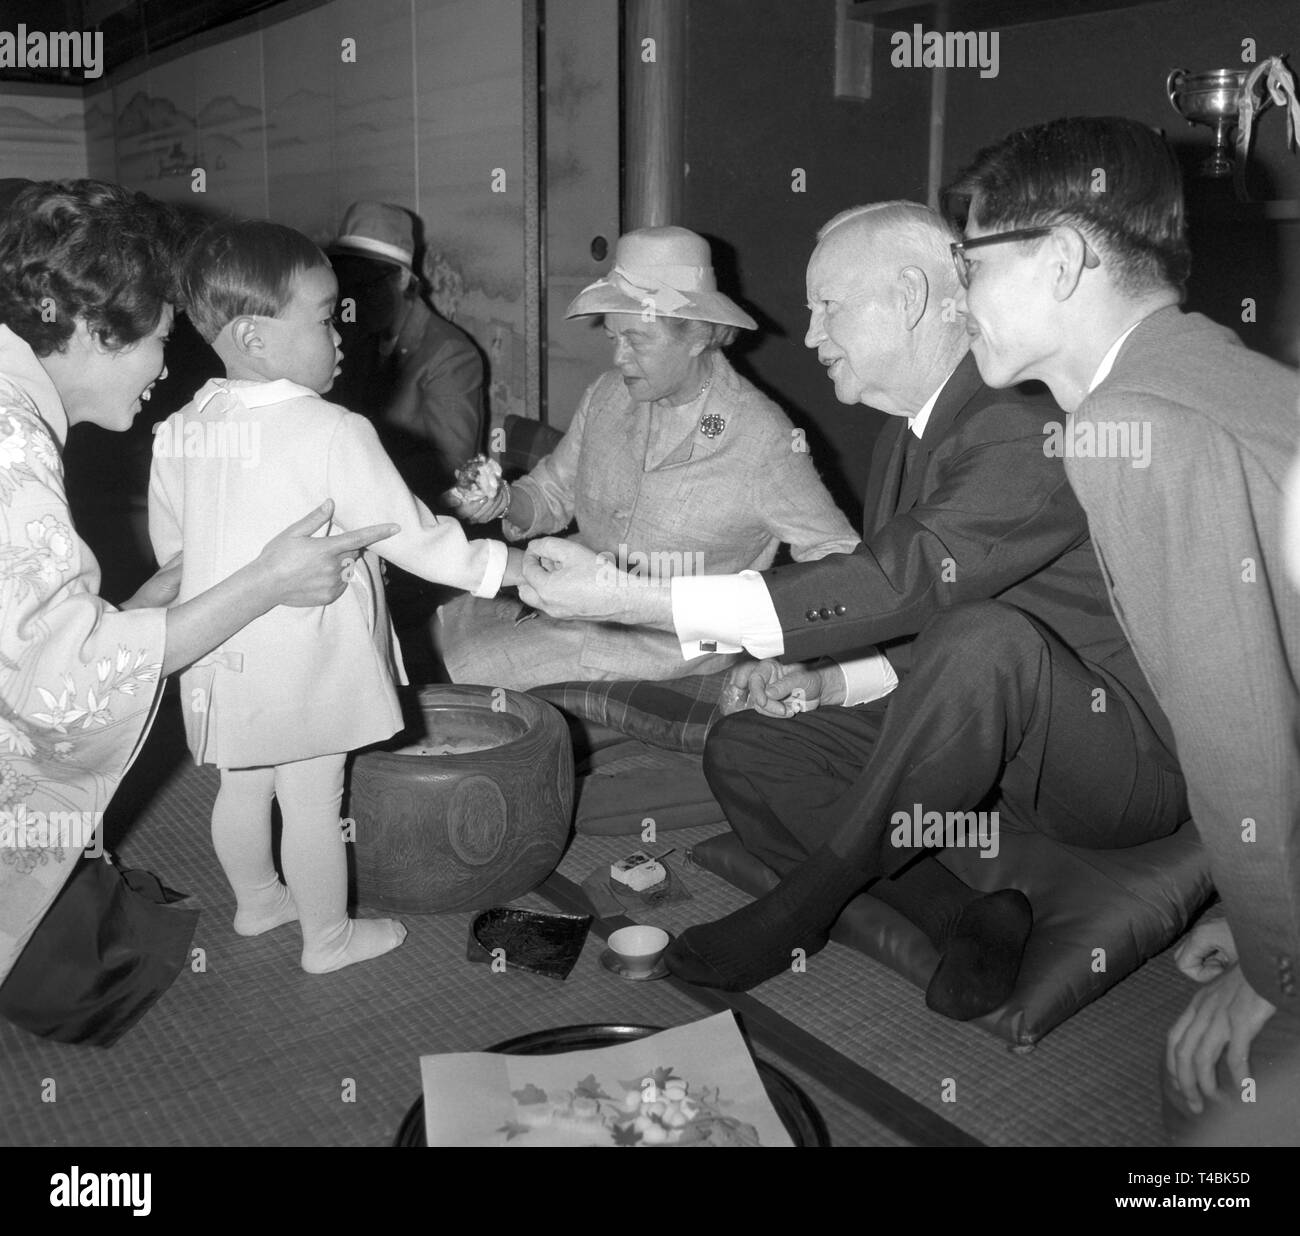 During their visit of the ancient imperial city Kyoto, the federal president Heinrich Lübke (2nd from the right) and his wife (3rd from the right) participate in a tea ceremony without wearing shoes and in a Japanese sitting posture, while a little child is welcoming Heinrich Lübke. | usage worldwide - Stock Image